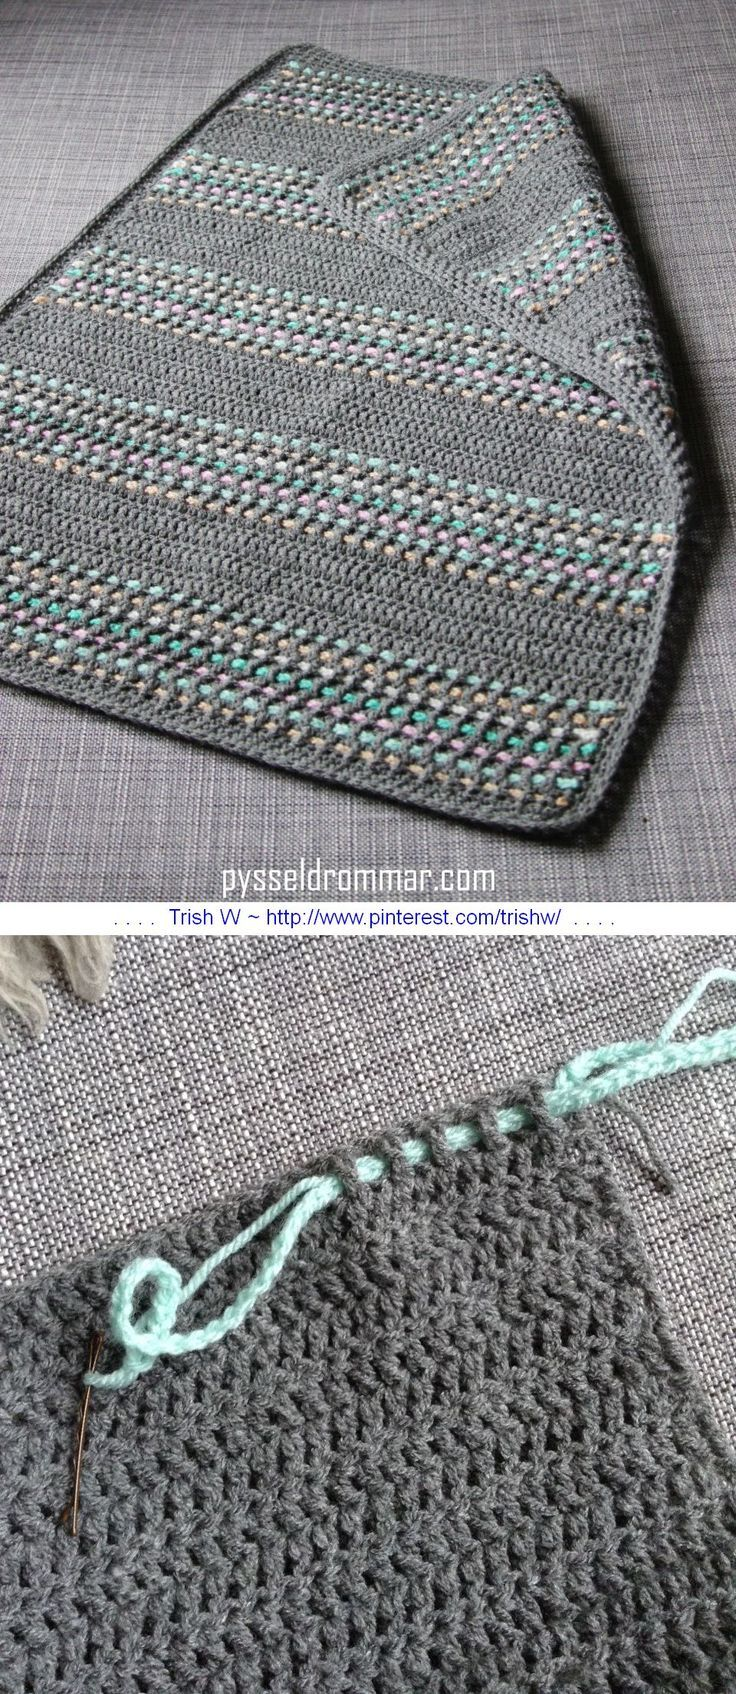 A Very Simple Baby Blanket Worked In All DC, With A Super